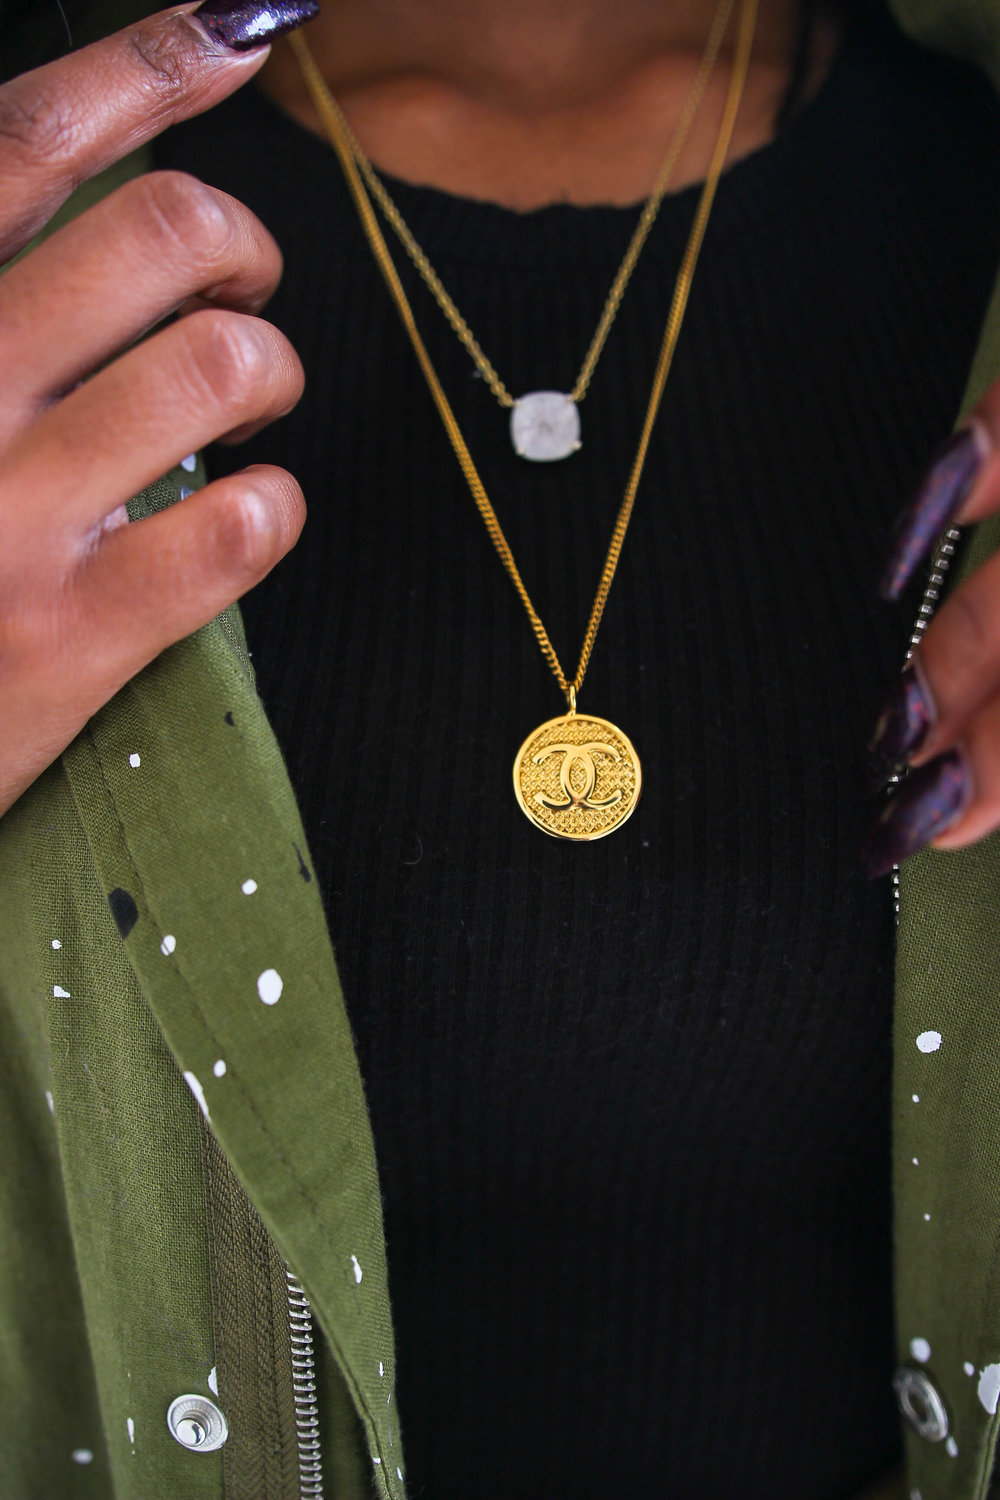 Supply Bloq Necklace. - Chanel - Gold Necklace - Necklace Layering